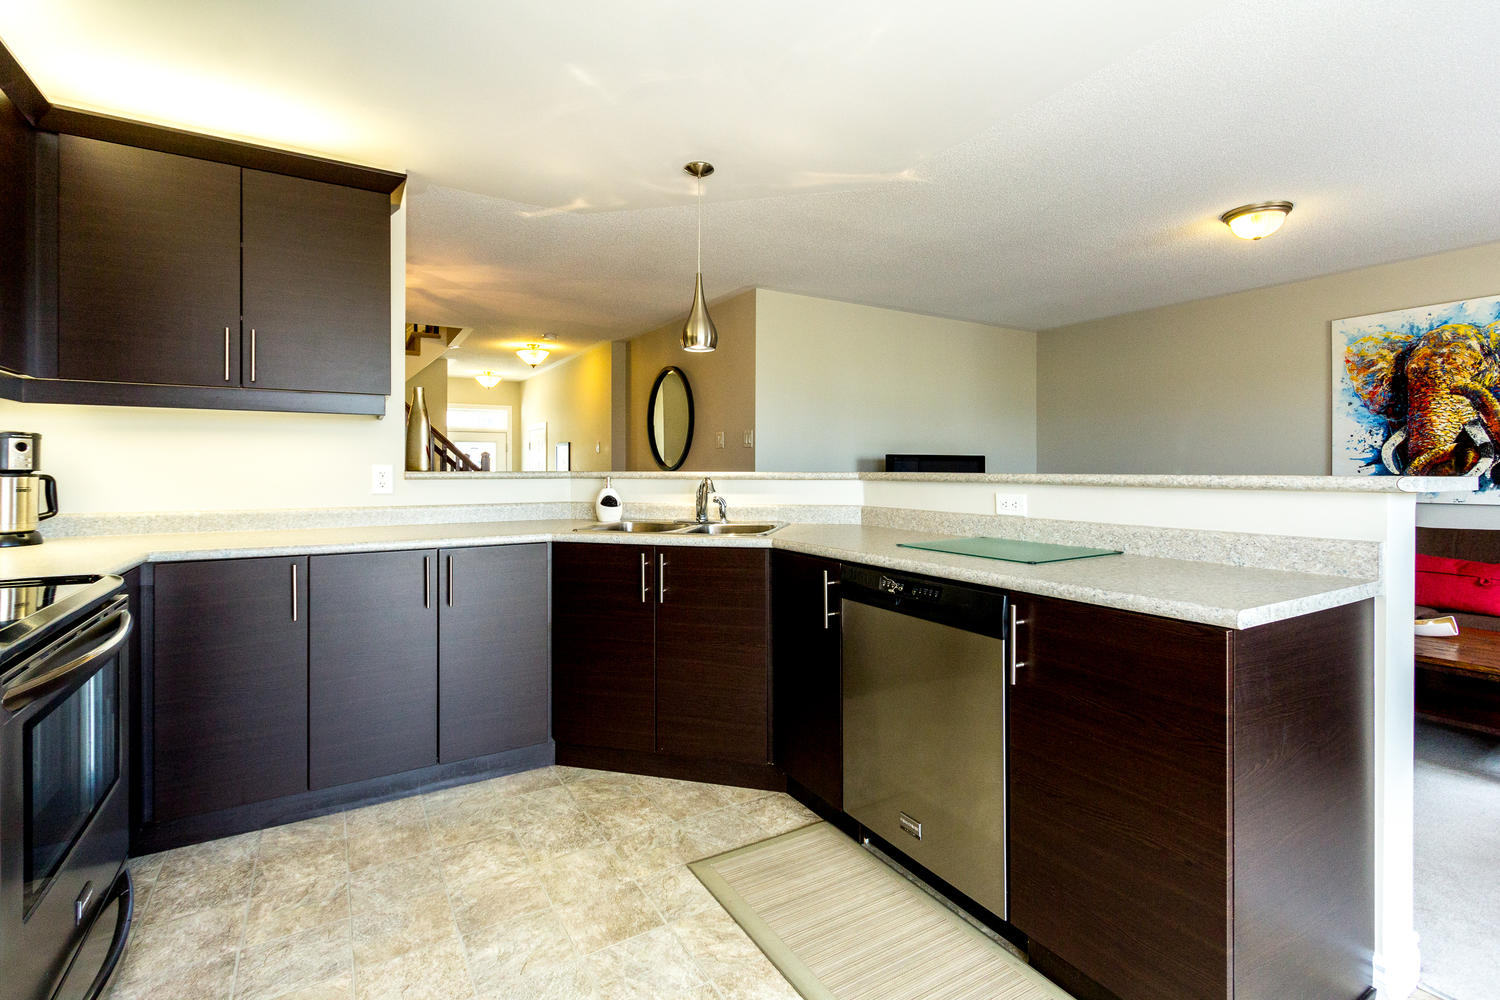 Large Chef's Kitchen.  full open concept, loads of counter and cabinet space, stainless steel appliances, massive breakfast bar that can sit 6-8 people comfortably.